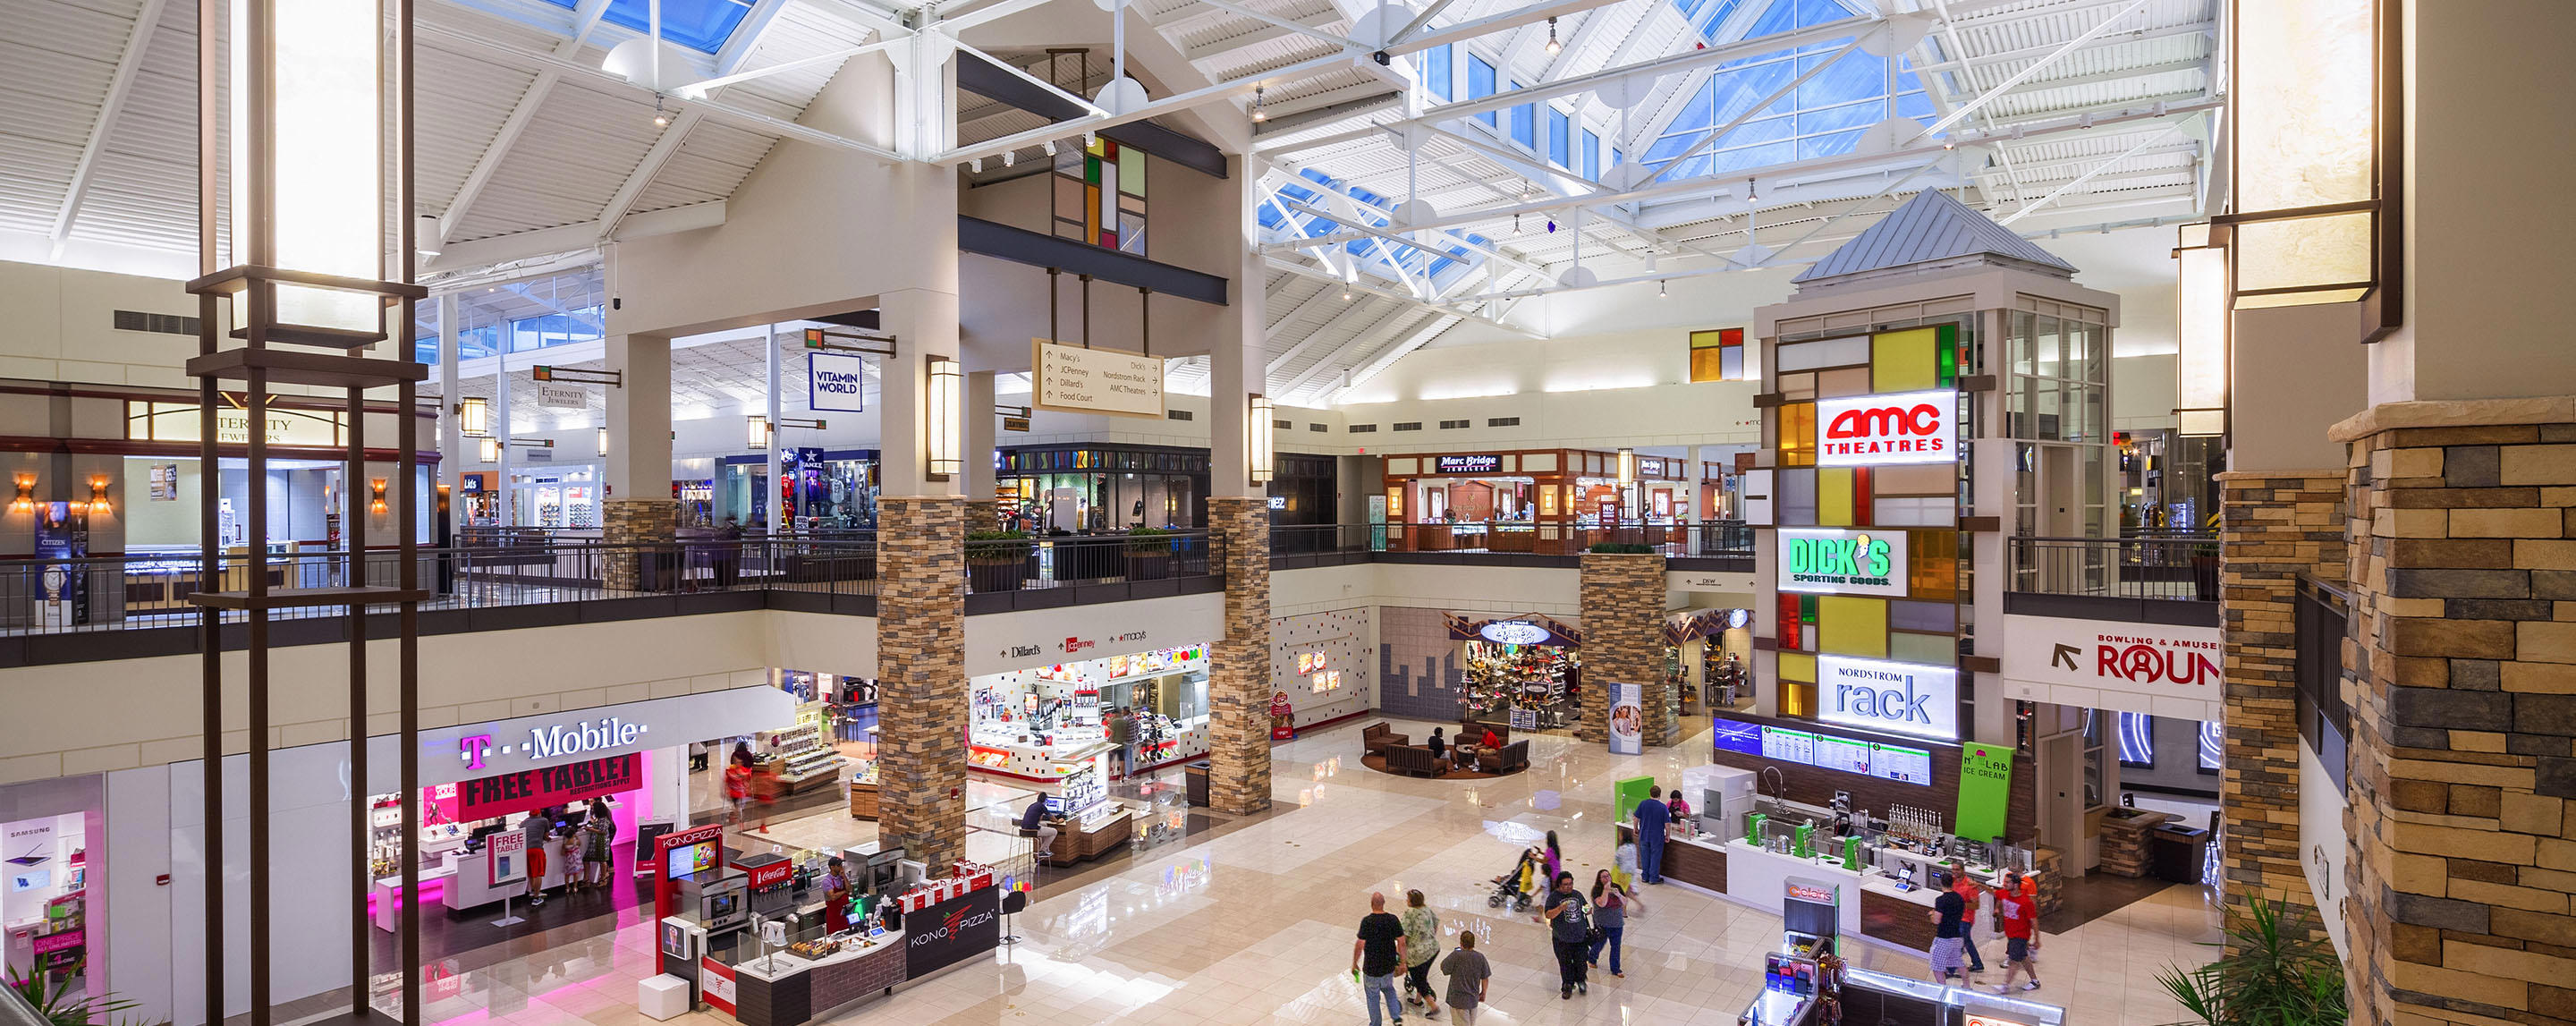 Inside The Parks Mall at Arlington, shoppers consider stores and entertainment options across two levels.